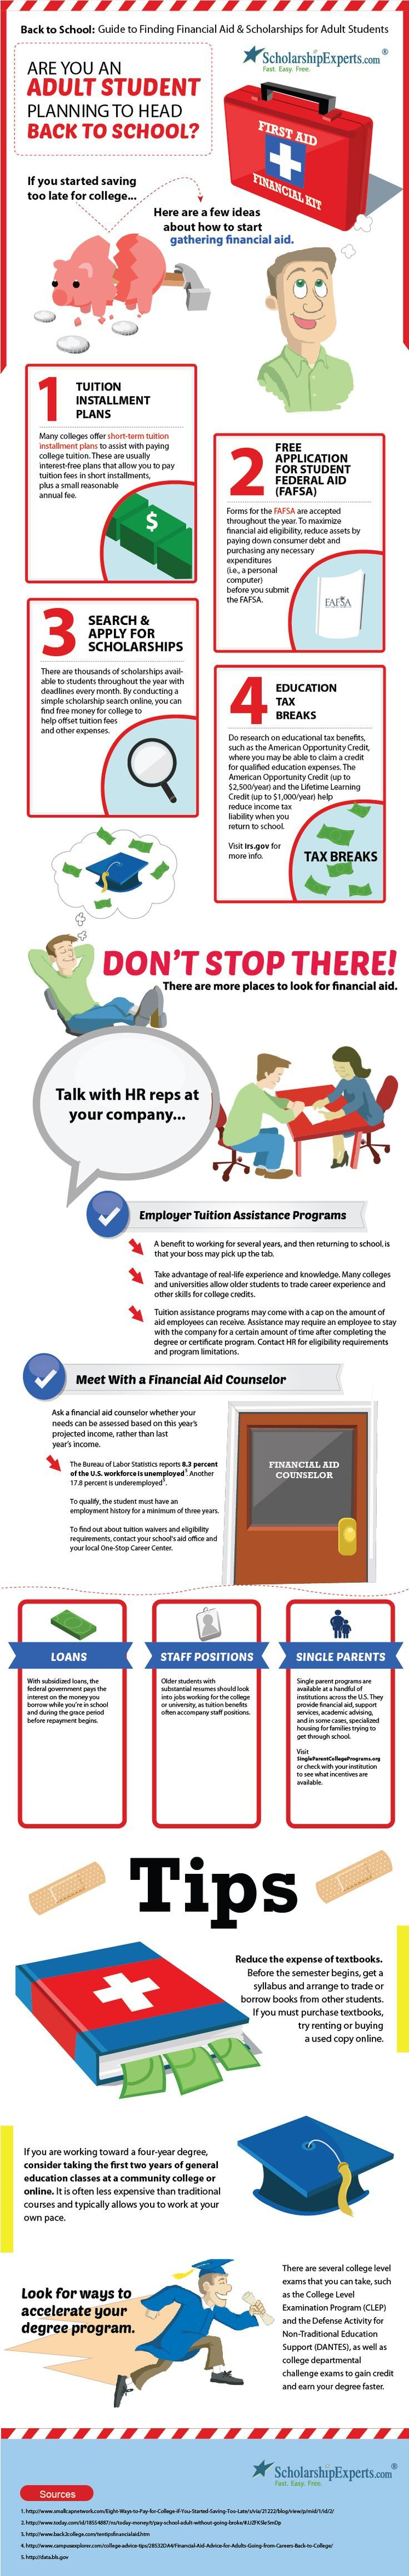 college aid Adult financial for